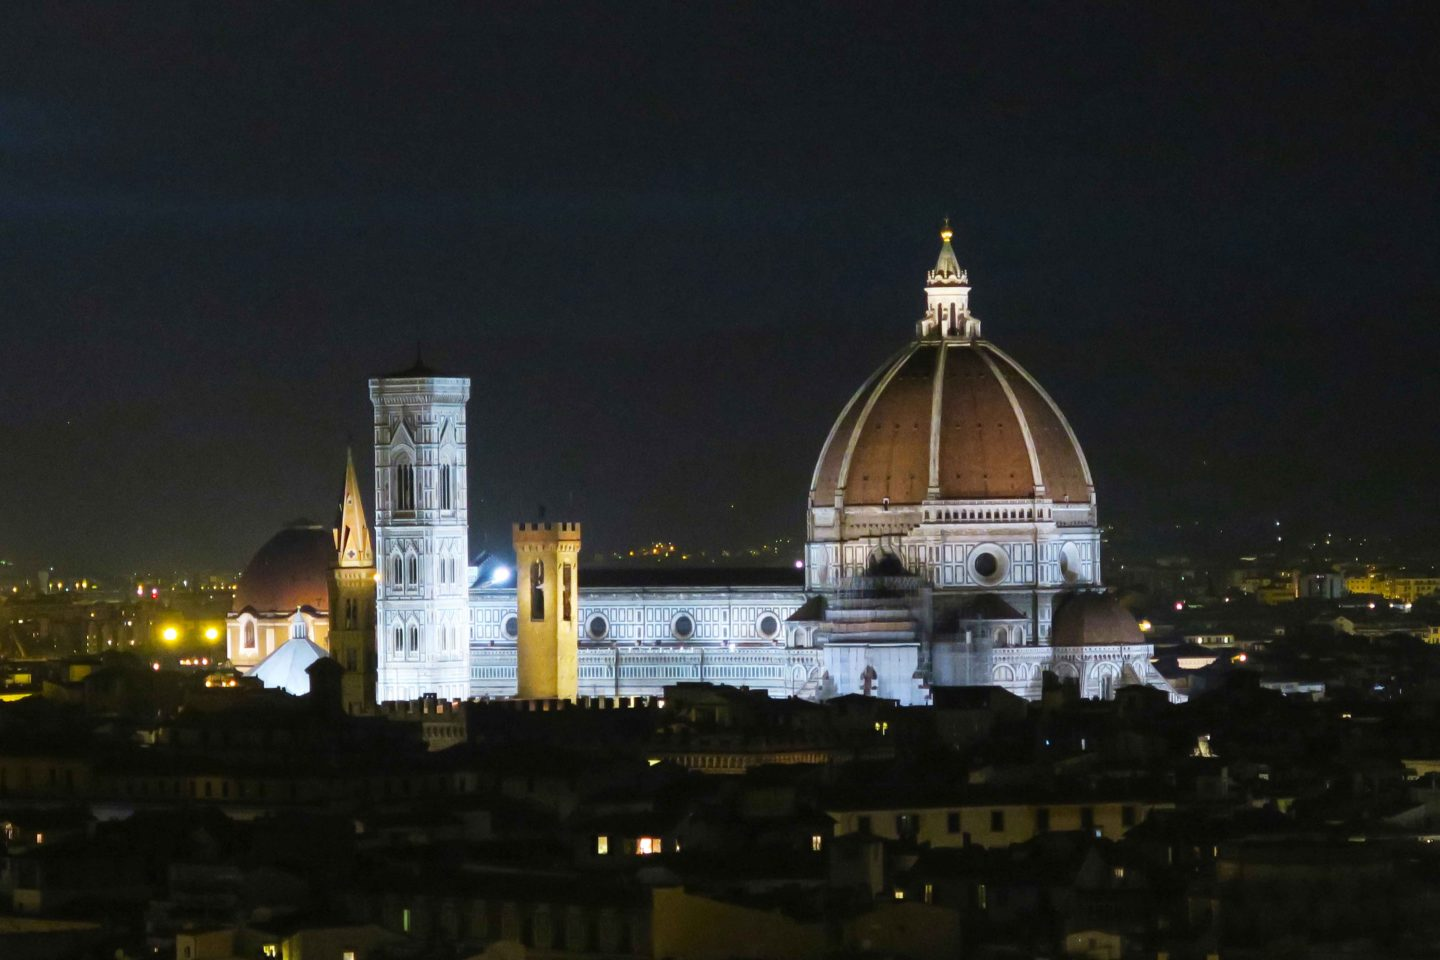 cattedrale di santa maria del fiore lit up at night